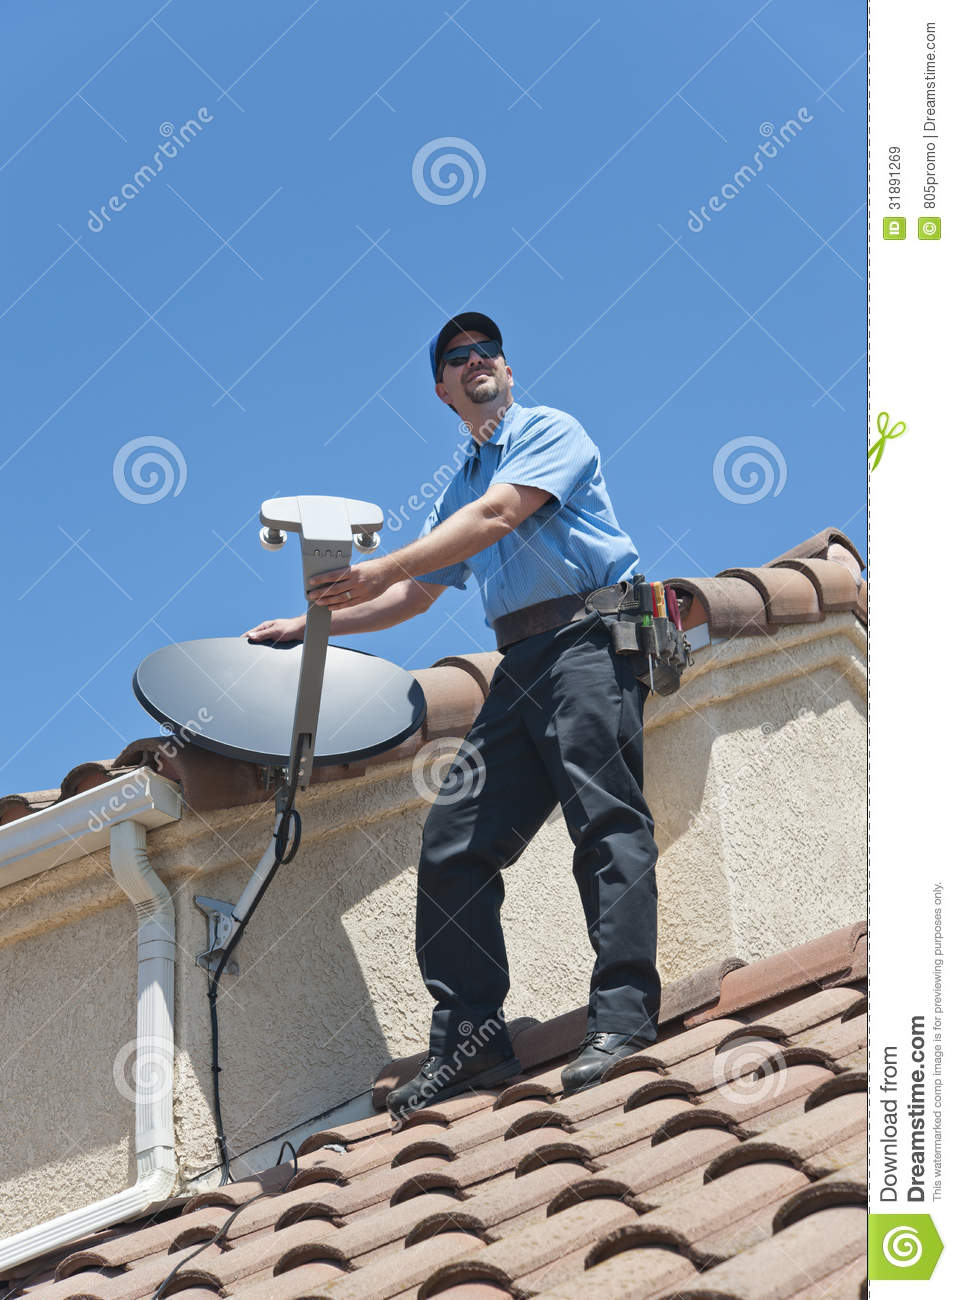 Satellite Installer On Roof Royalty Free Stock Images  Image 31891269